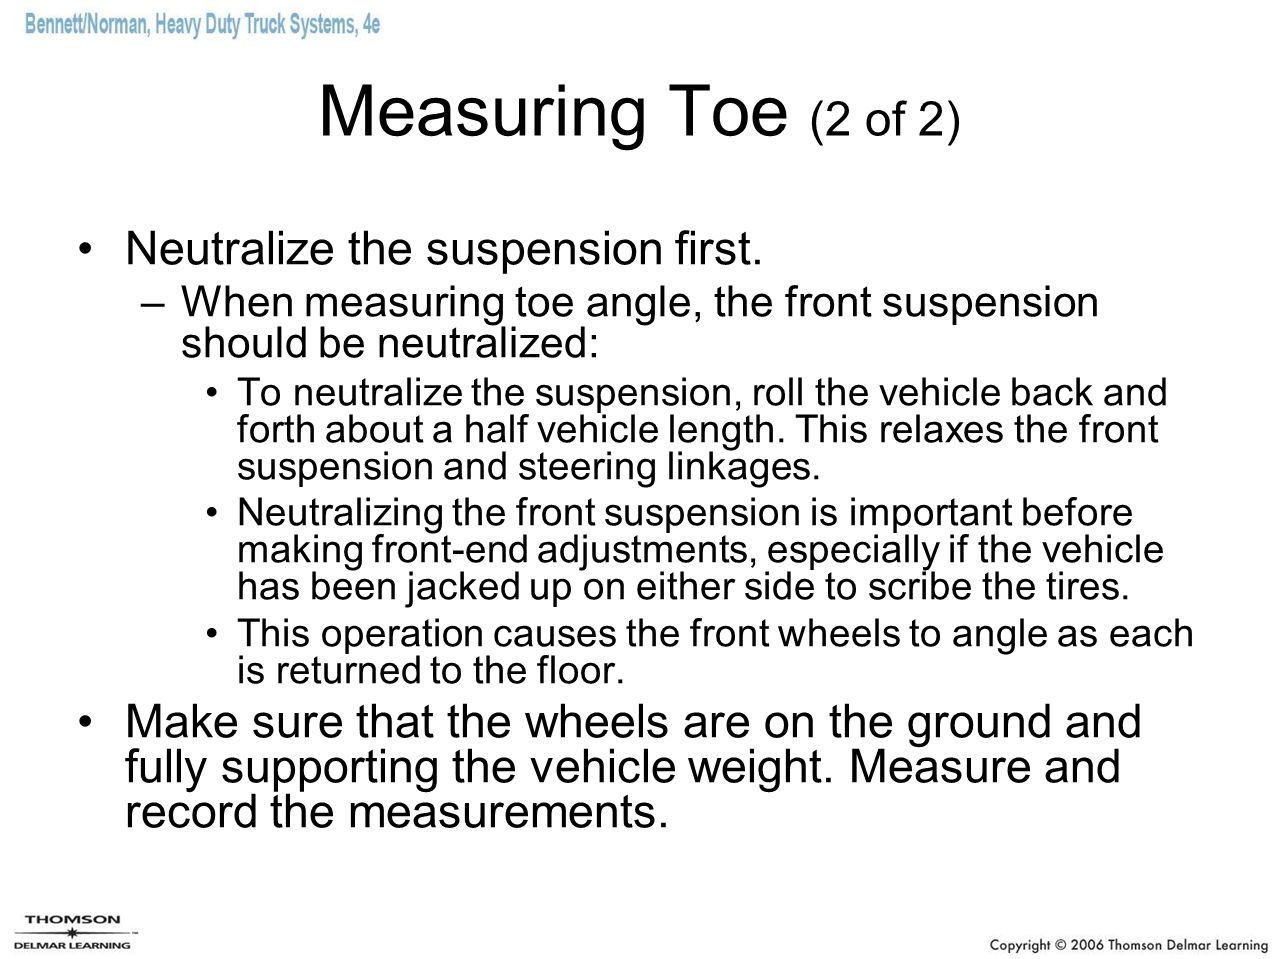 Measuring Toe (2 of 2) Neutralize the suspension first.